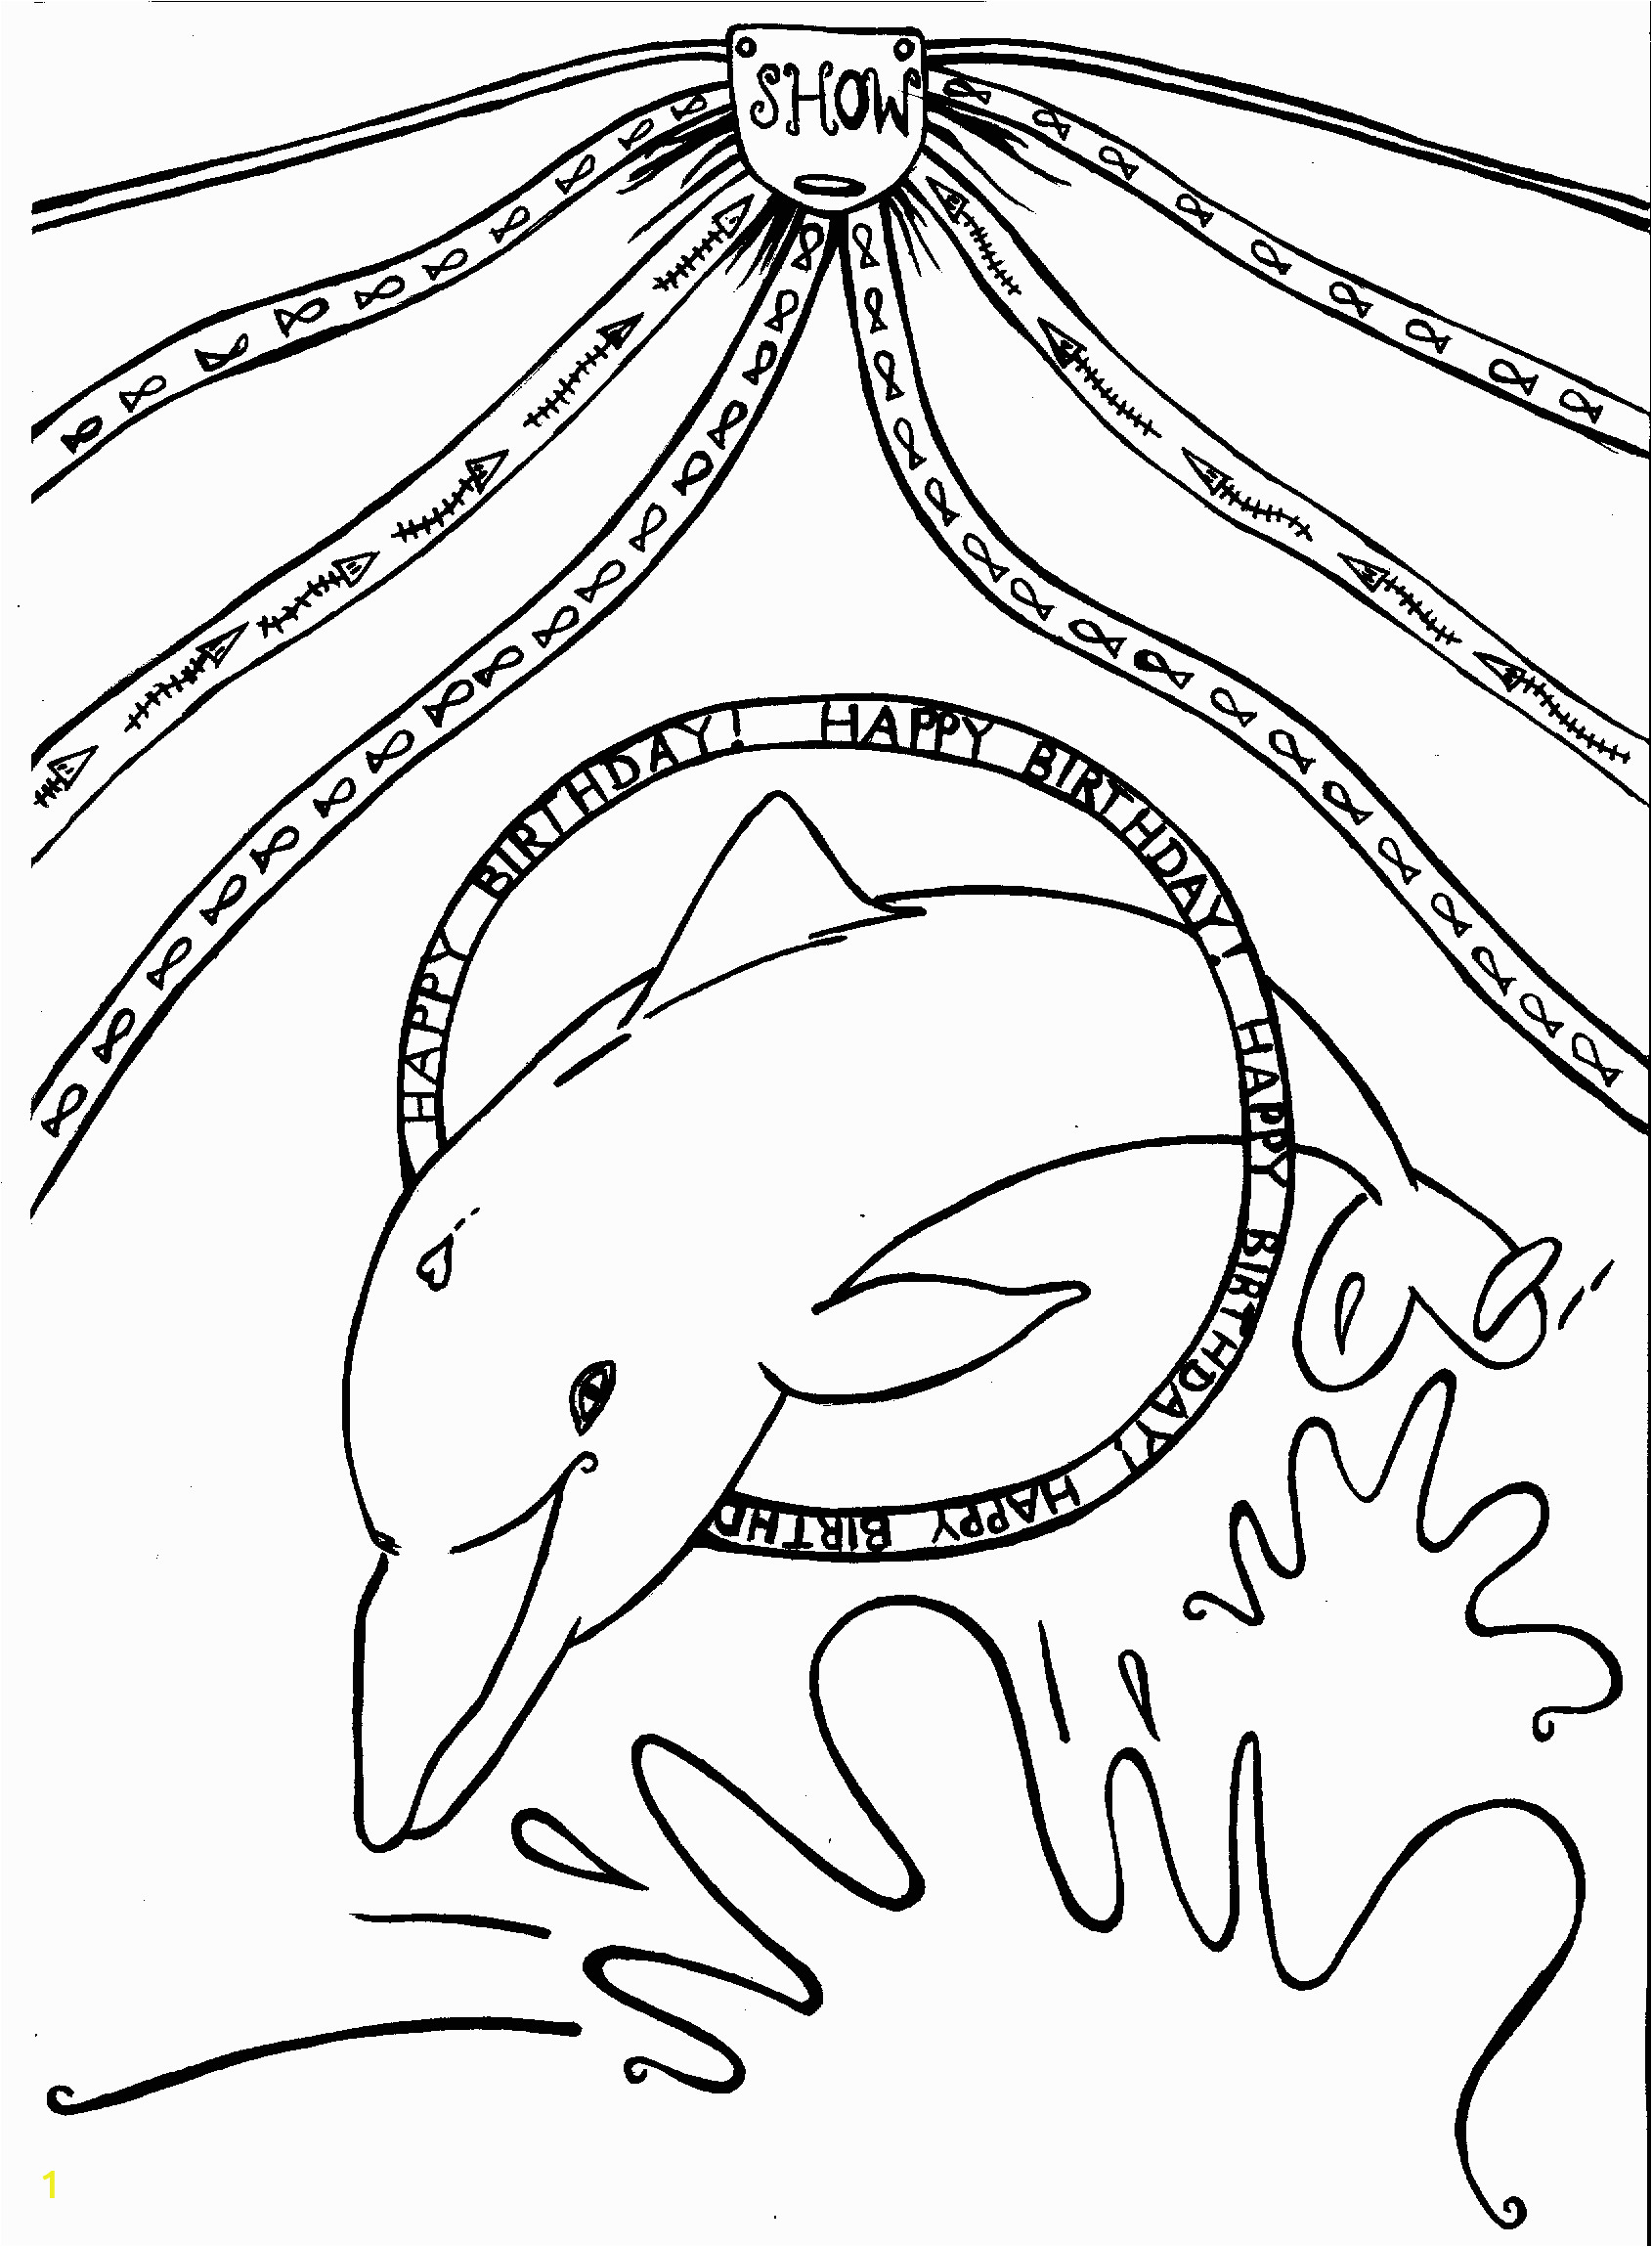 Miami Dolphins Coloring Pages Color Pages Miamilphin Coloring Pages Logo Justpage